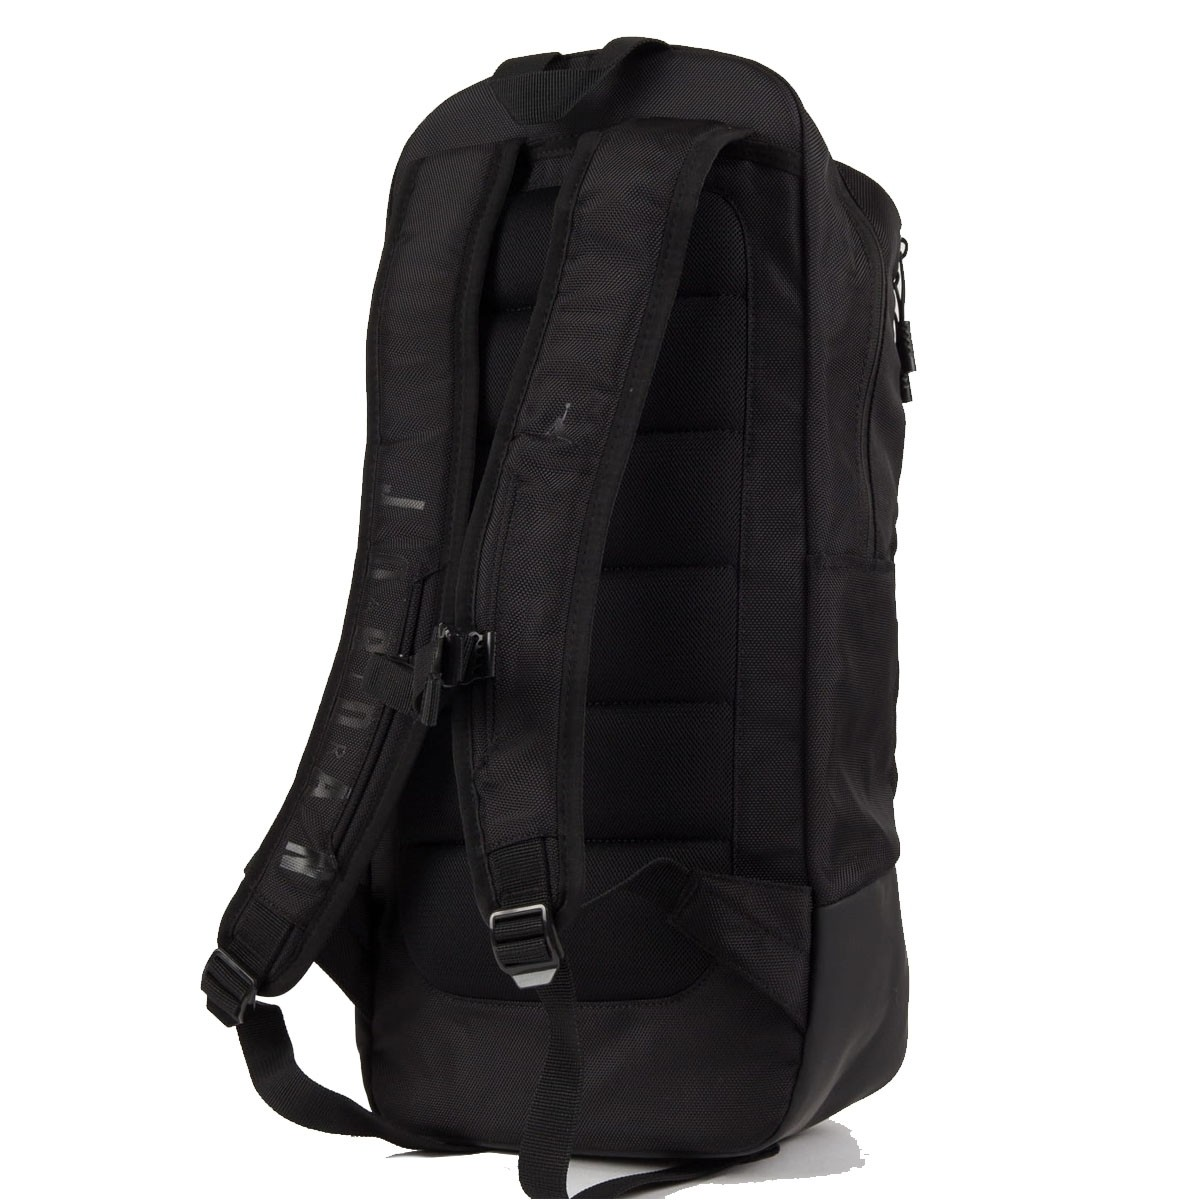 Jordan Fluid Backpack 'Black' 9B0166-023